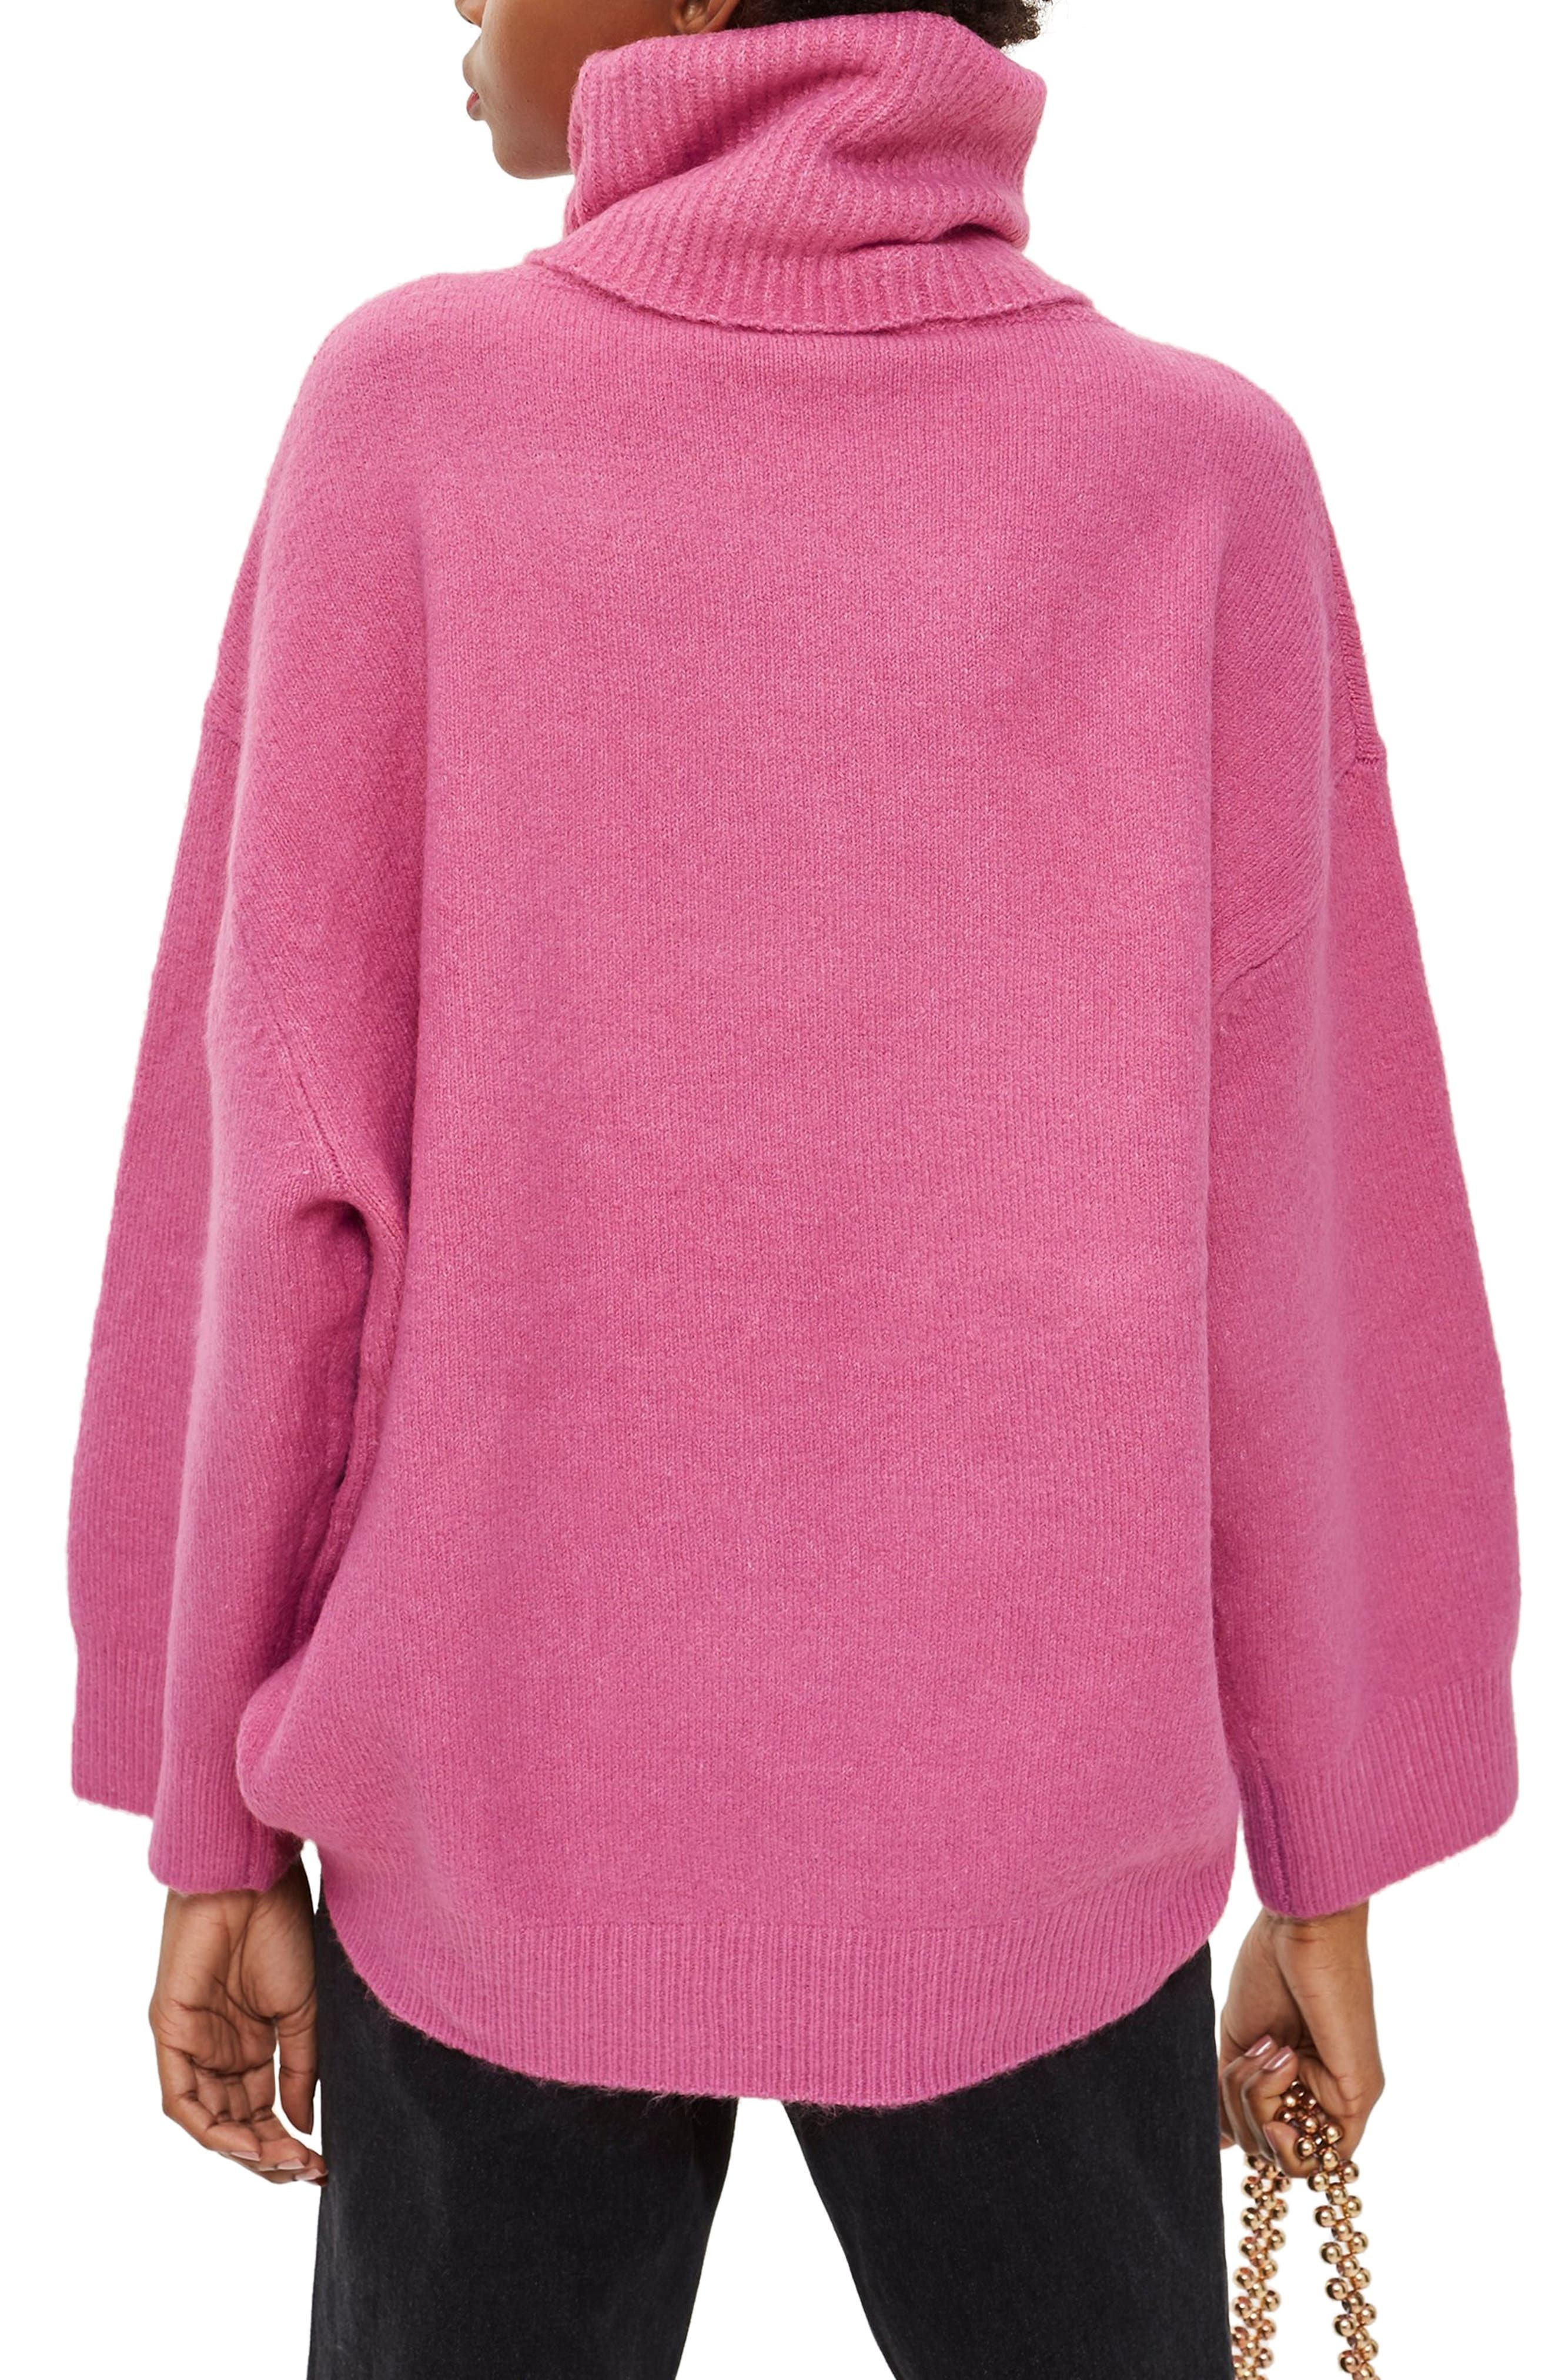 Oversize Turtleneck Sweater,                             Alternate thumbnail 2, color,                             BRIGHT PINK